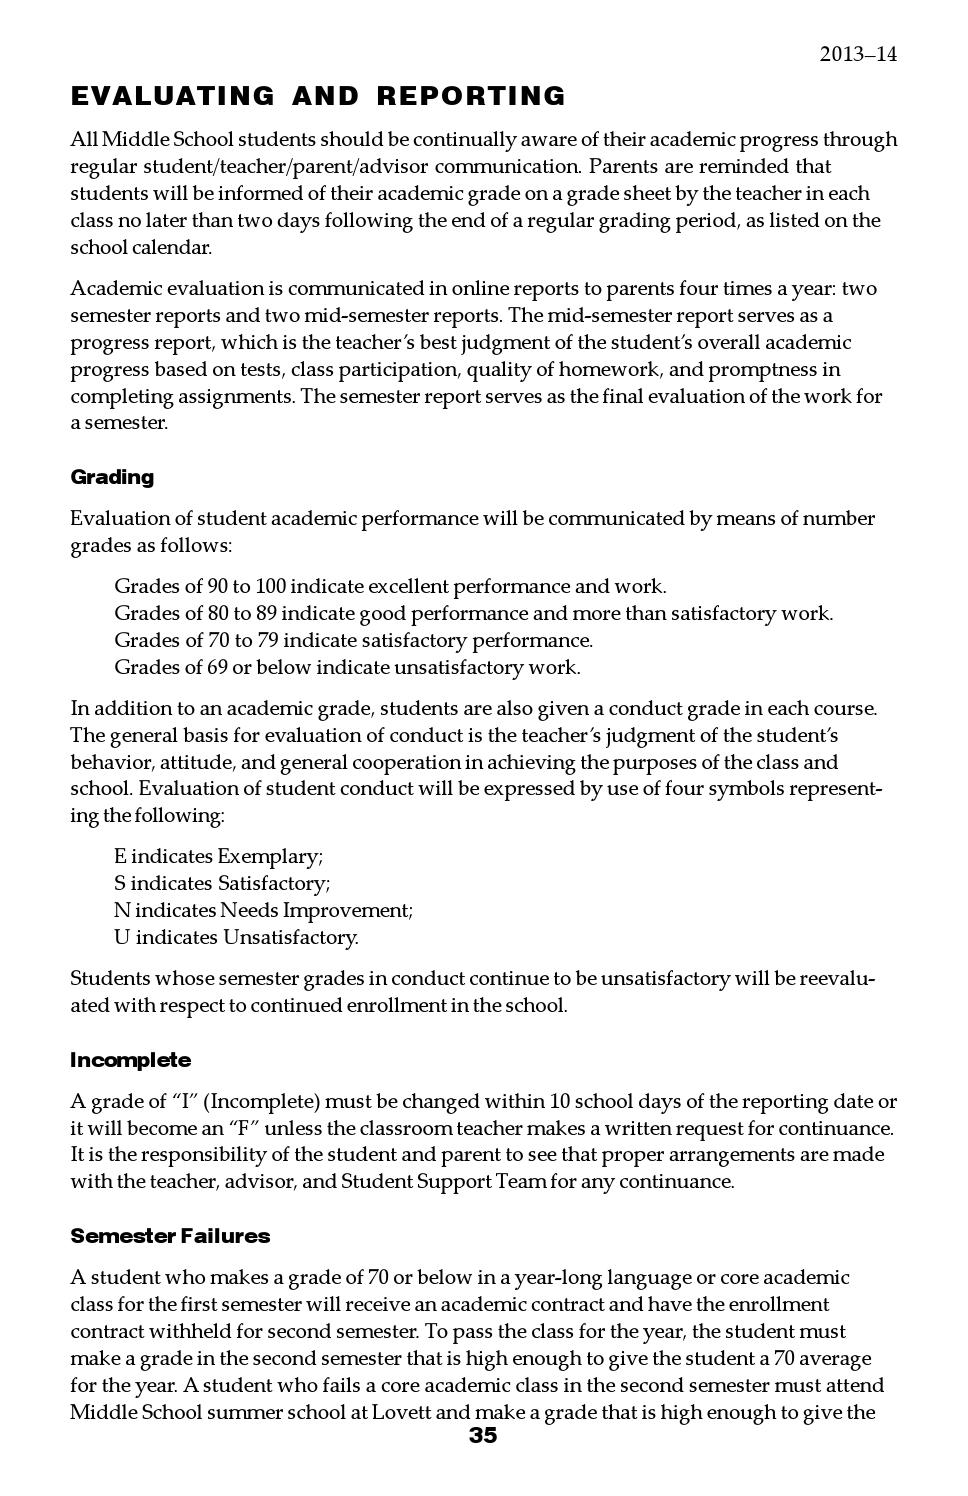 my english study essay country par science and technology essay topics seed